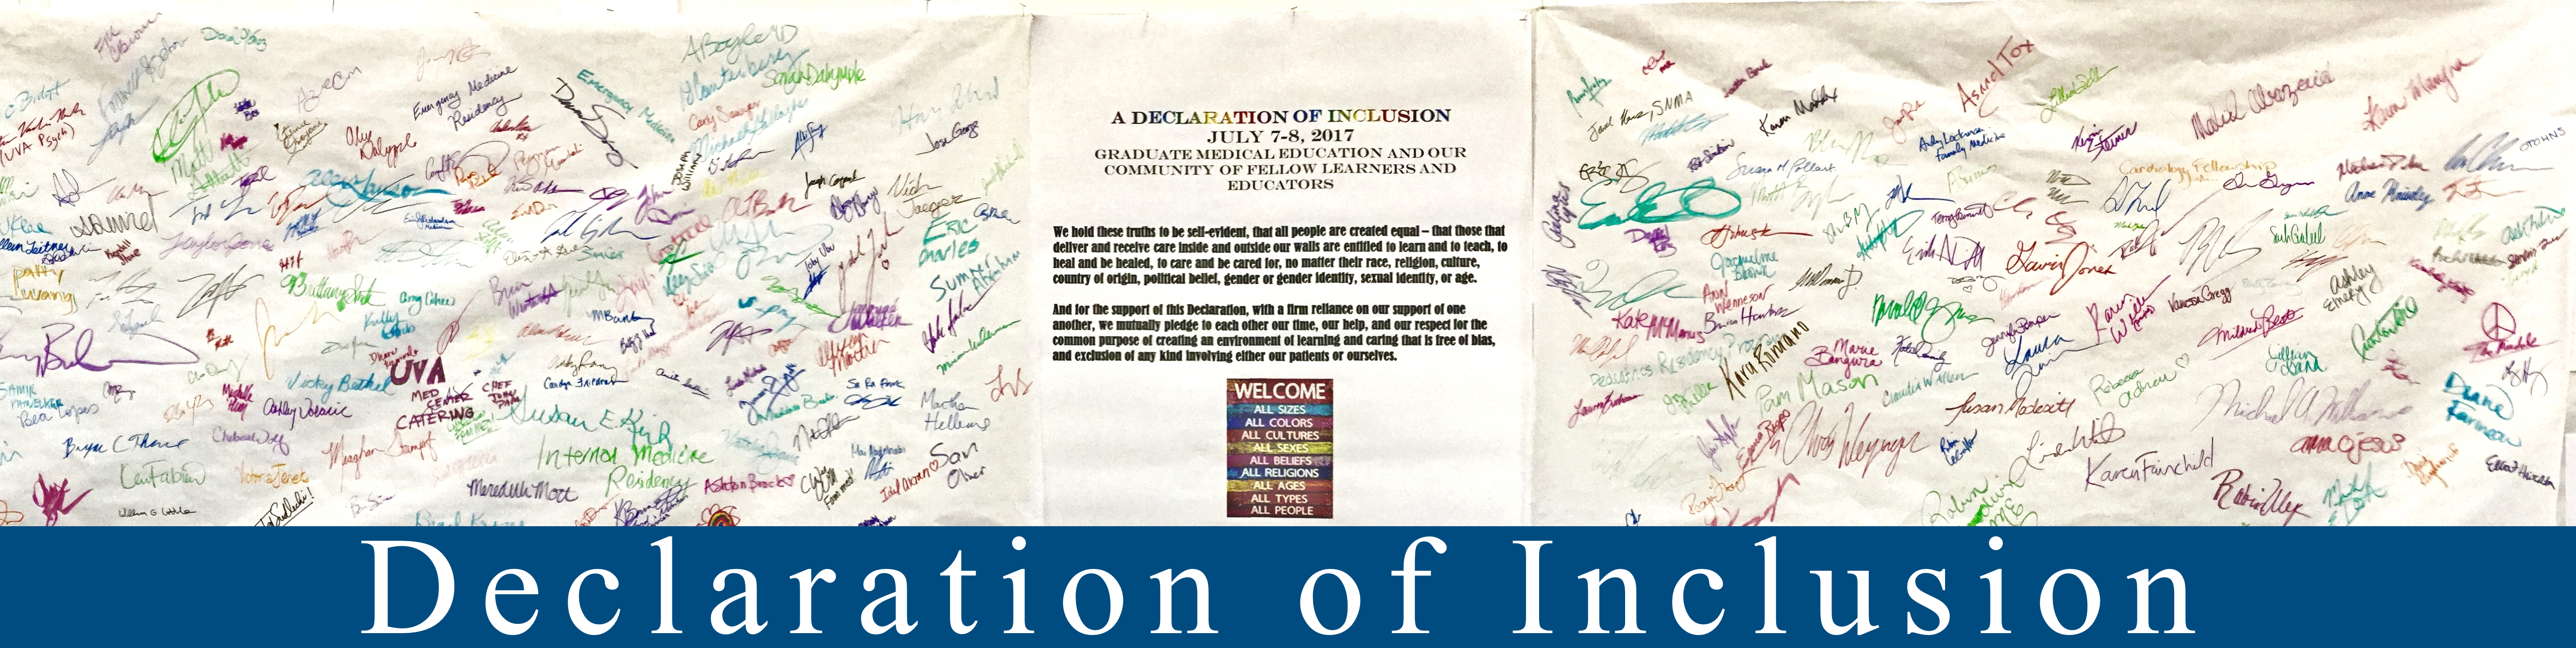 Declaration of Inclusion